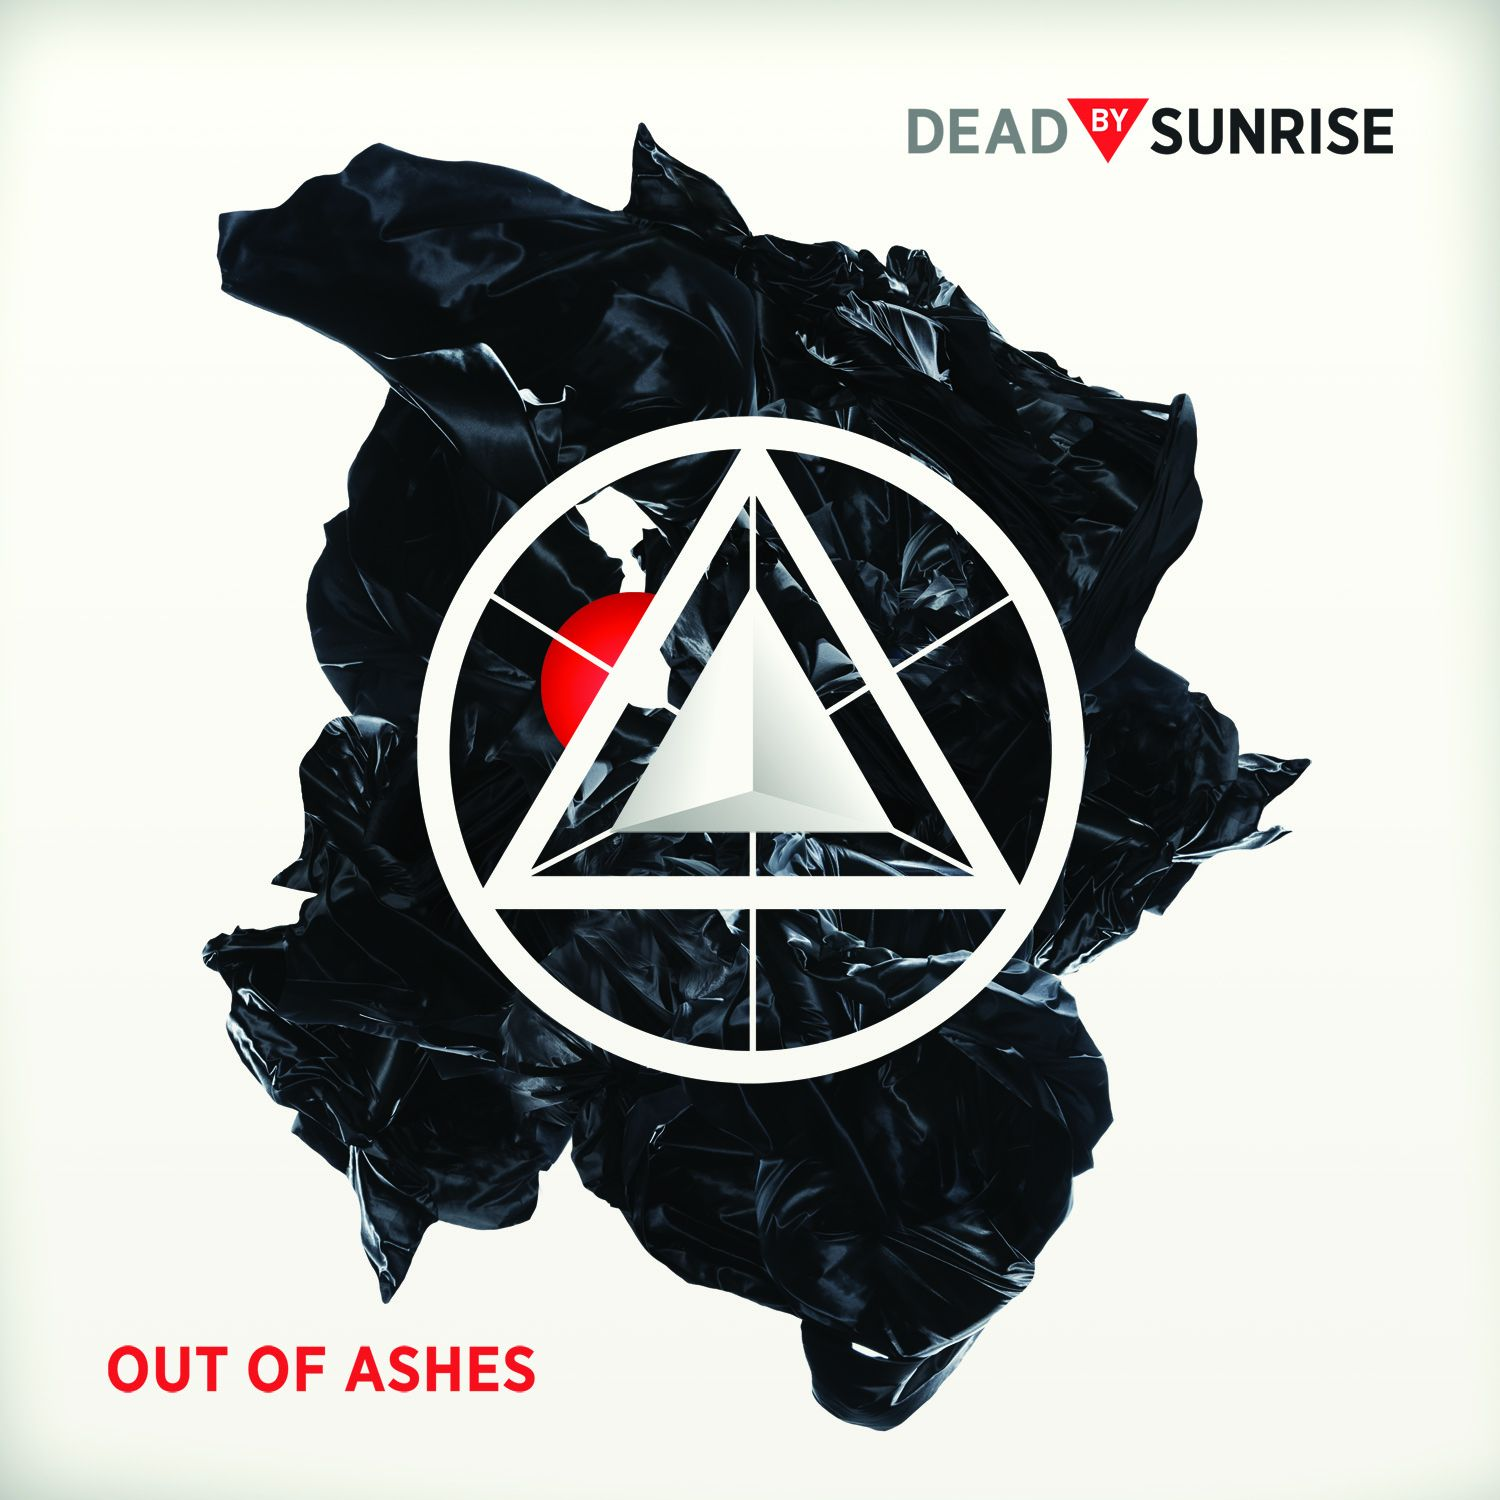 Dead by Sunrise: Out of Ashes (2009) Book Cover